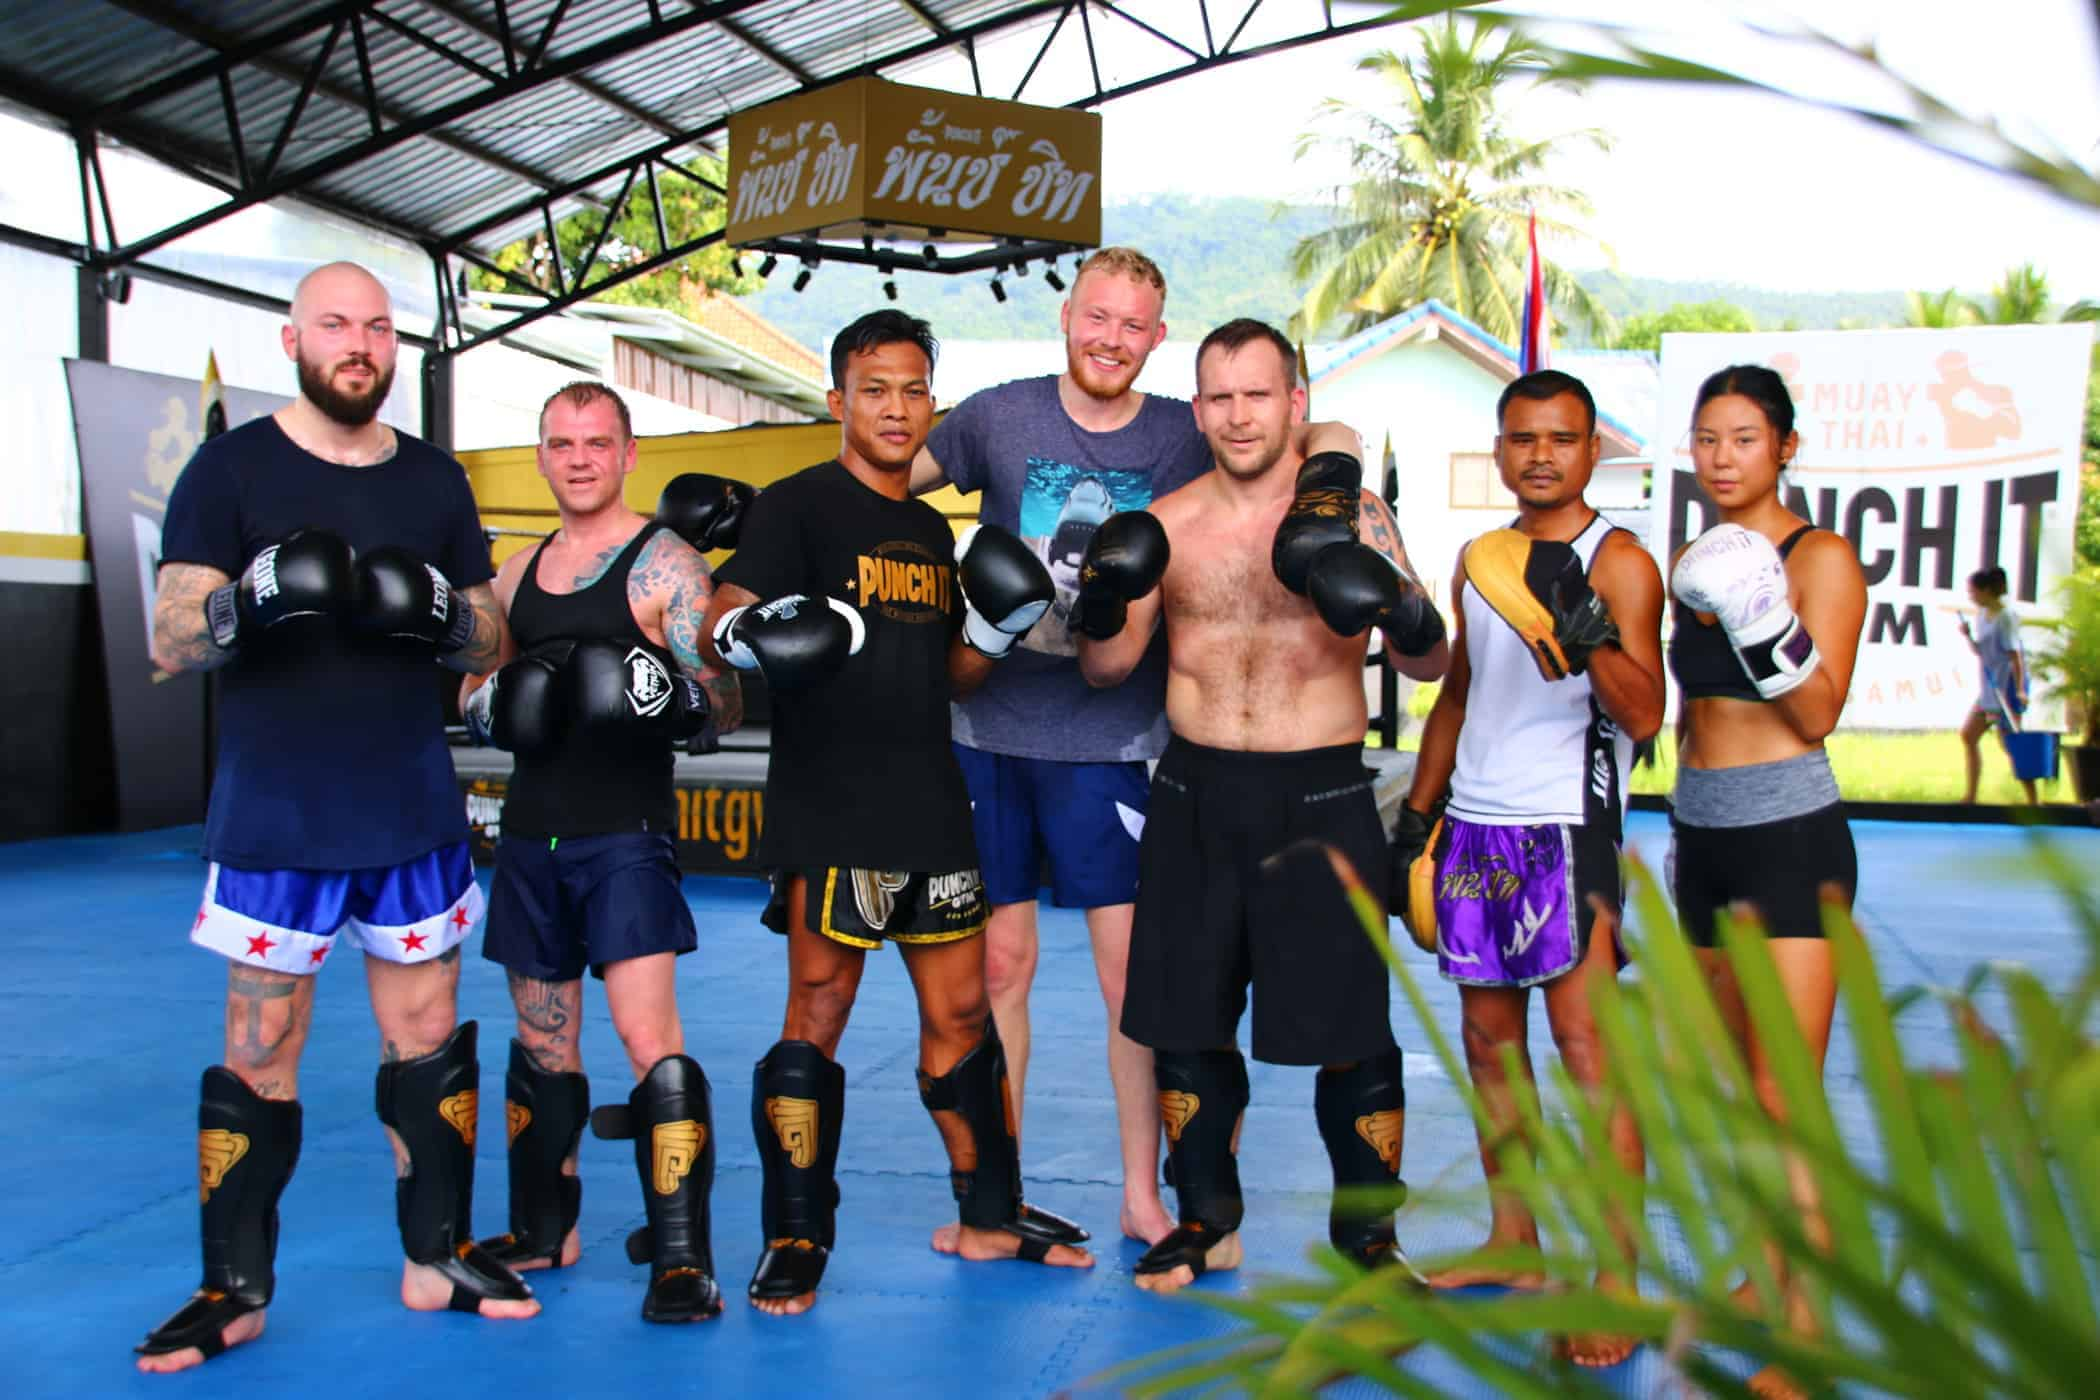 Building a stylish Muay Thai Camp for Boxing in Thailand with rich architecture